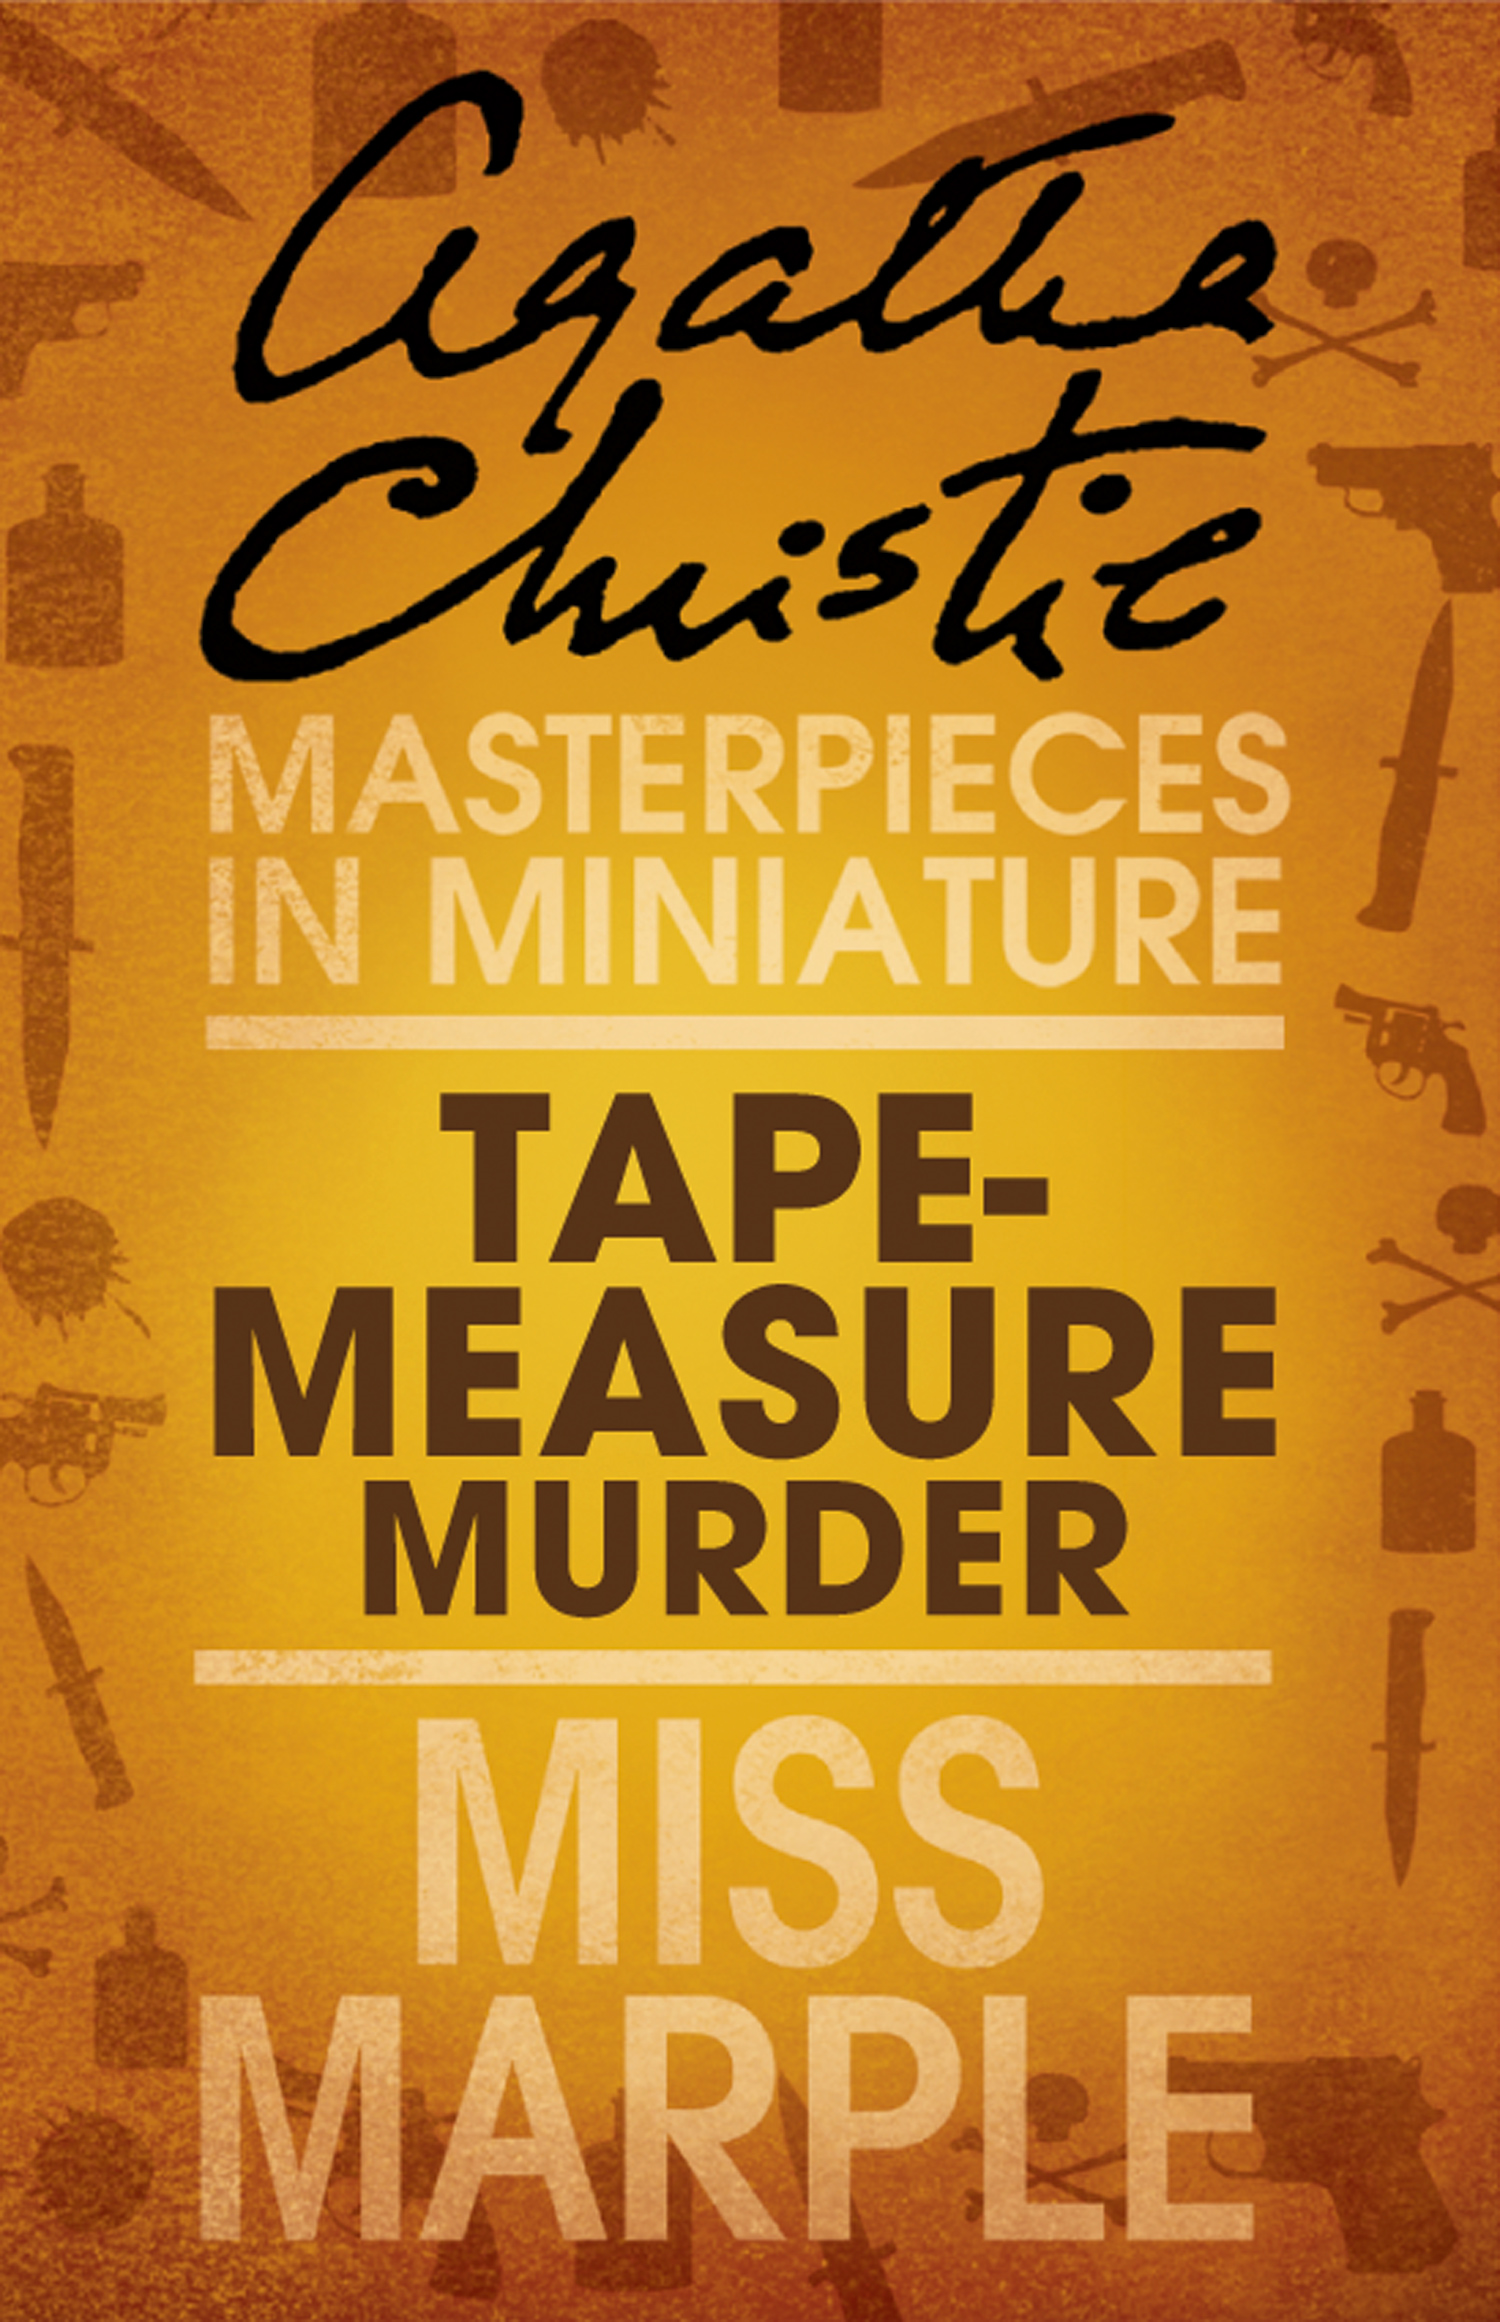 Tape Measure Murder: A Miss Marple Short Story